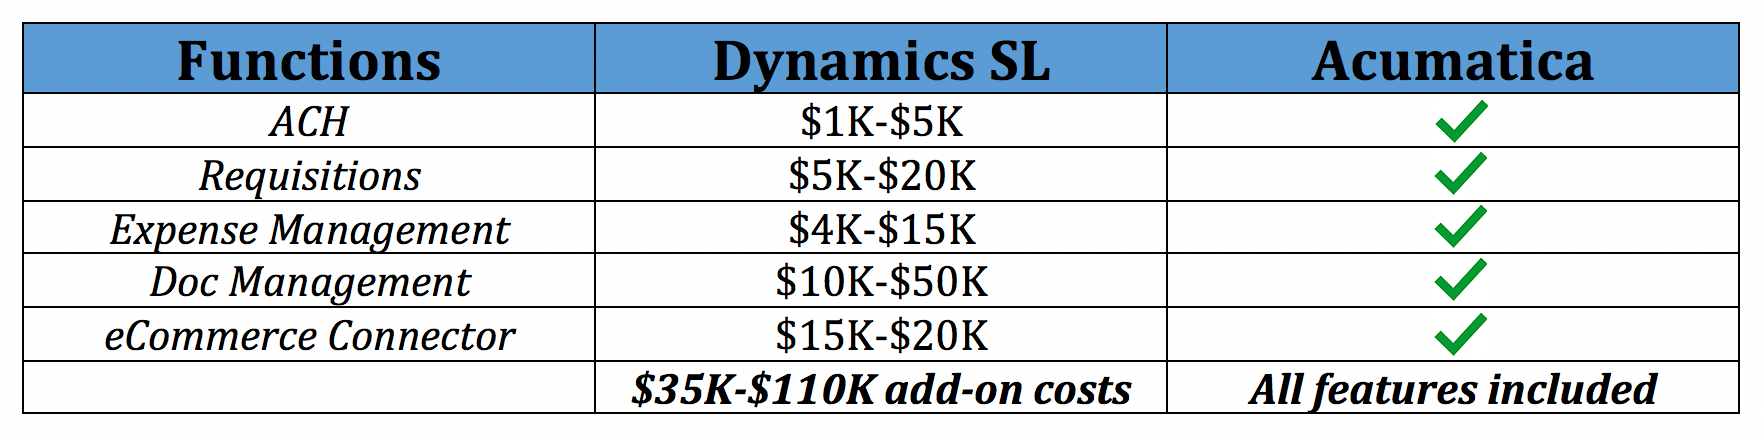 Acumatica vs SL with eCommerce